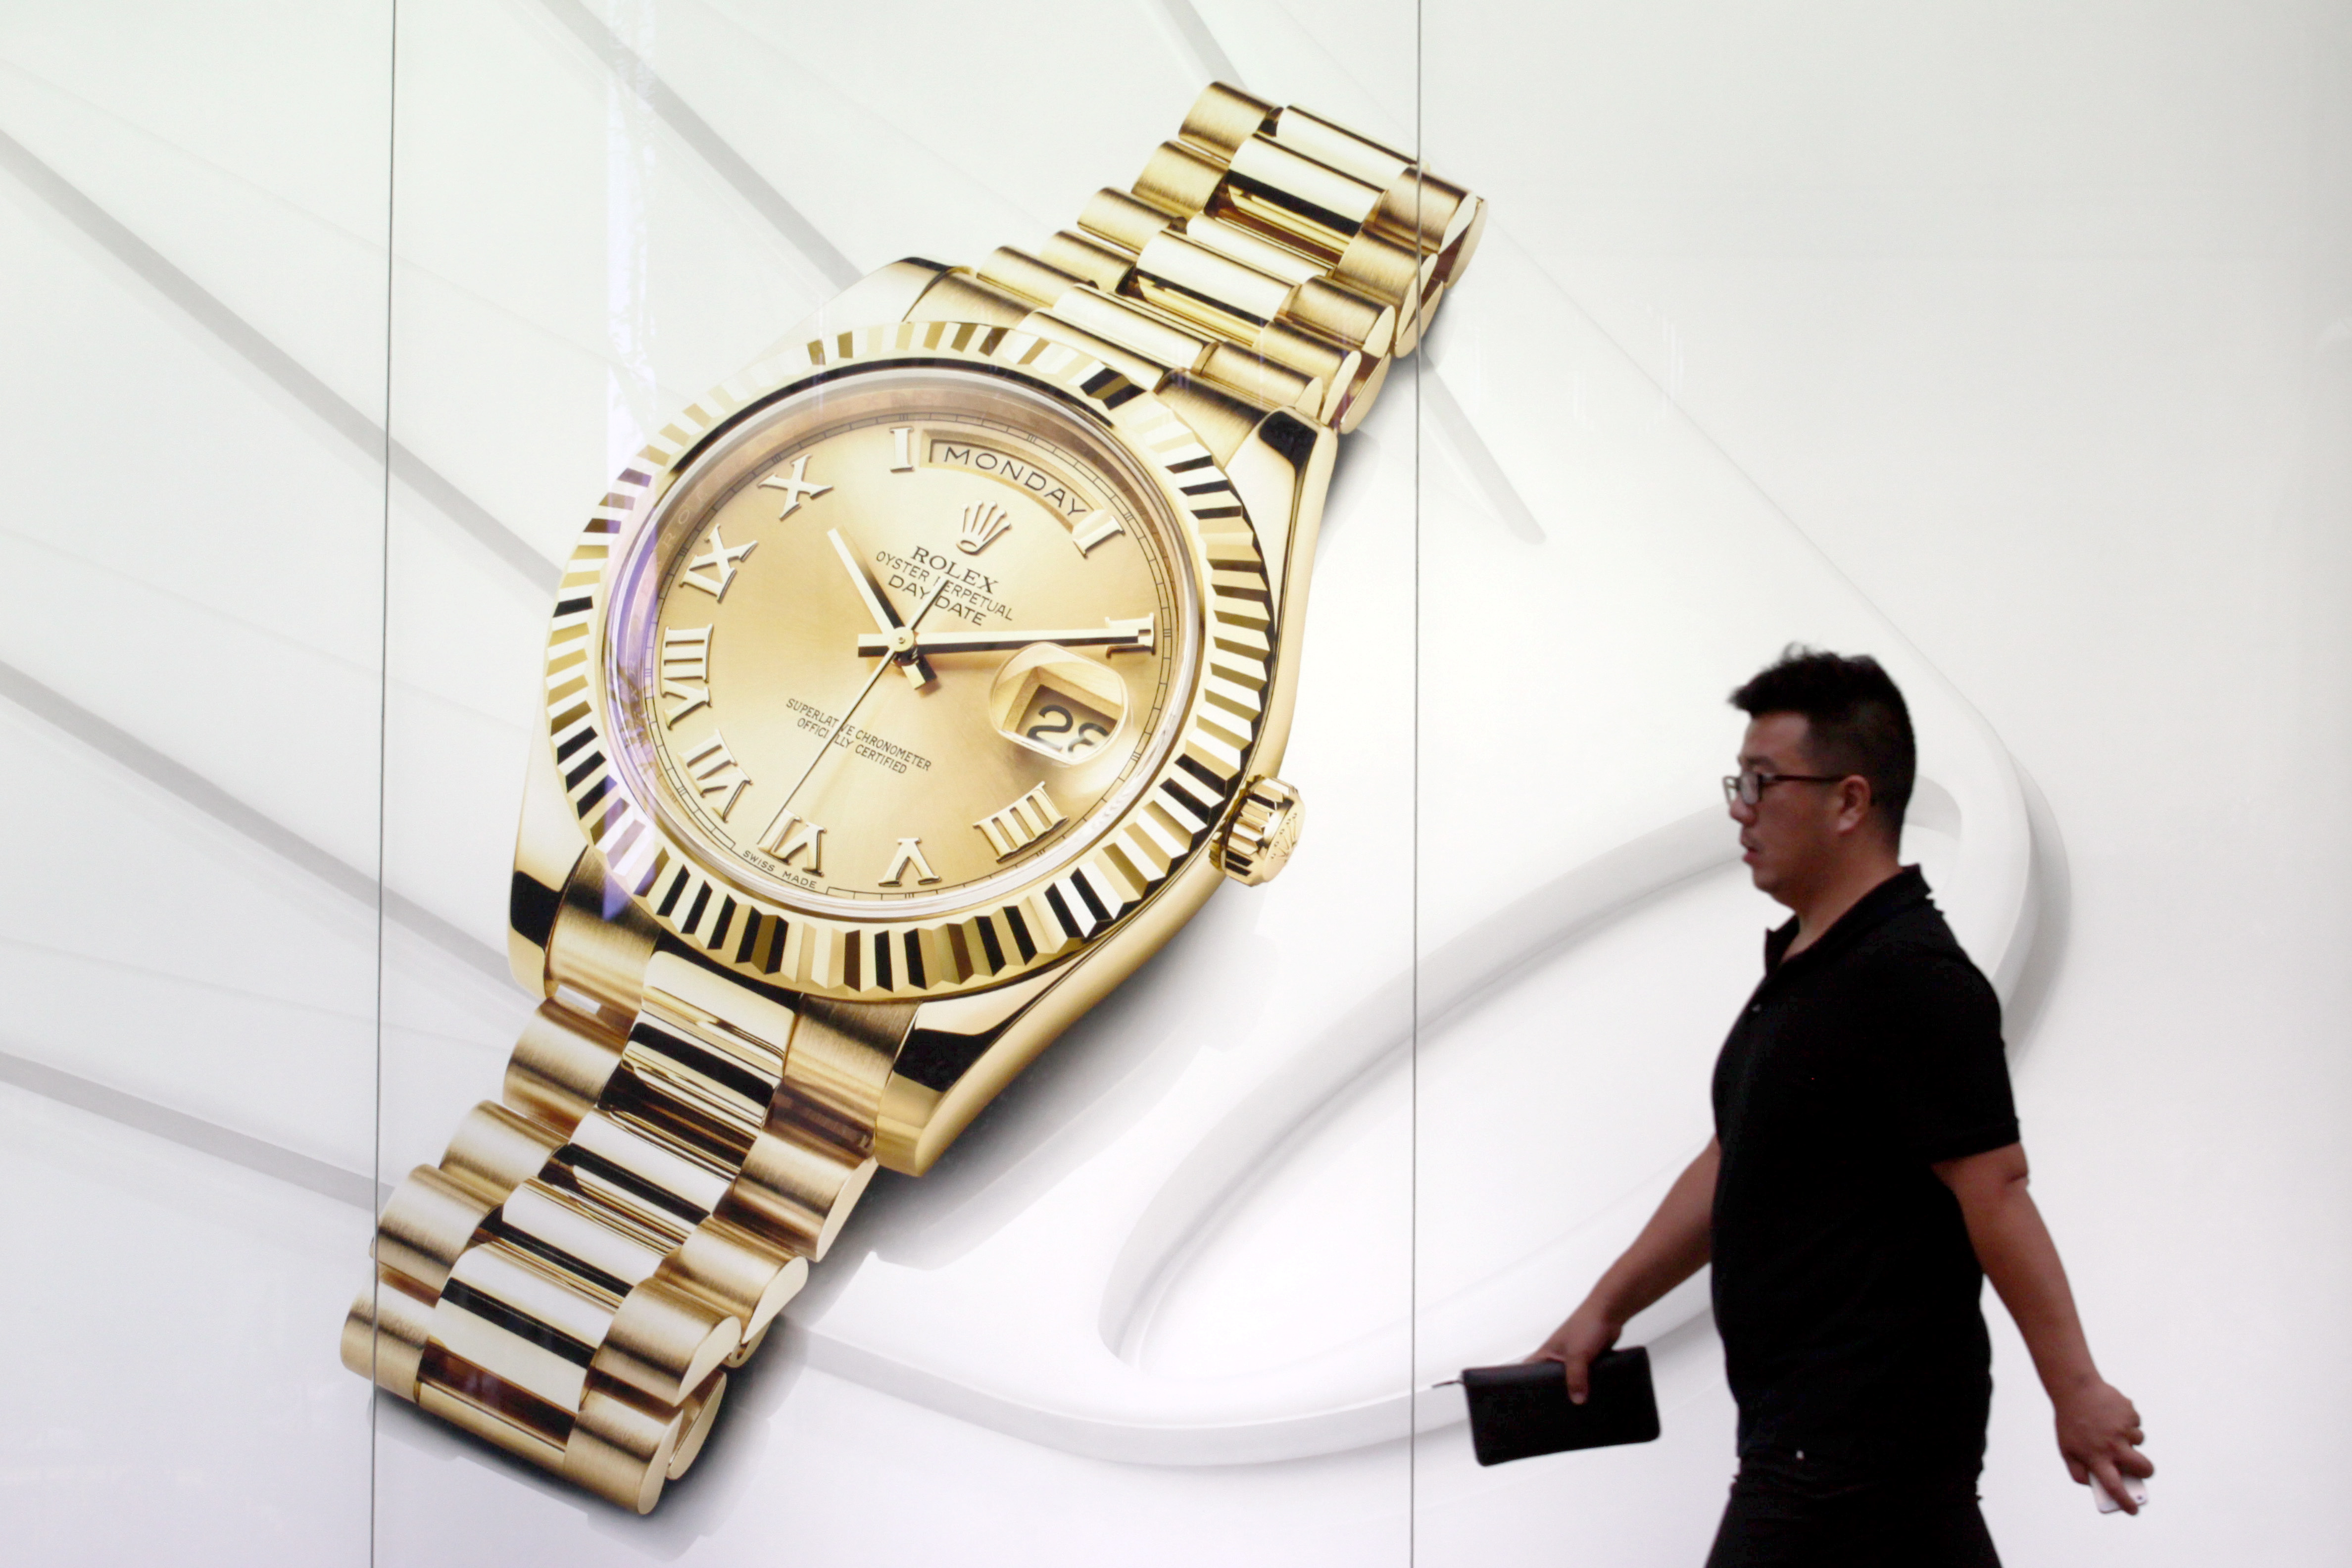 A pedestrian walks past an advertisement for Rolex watches in China.